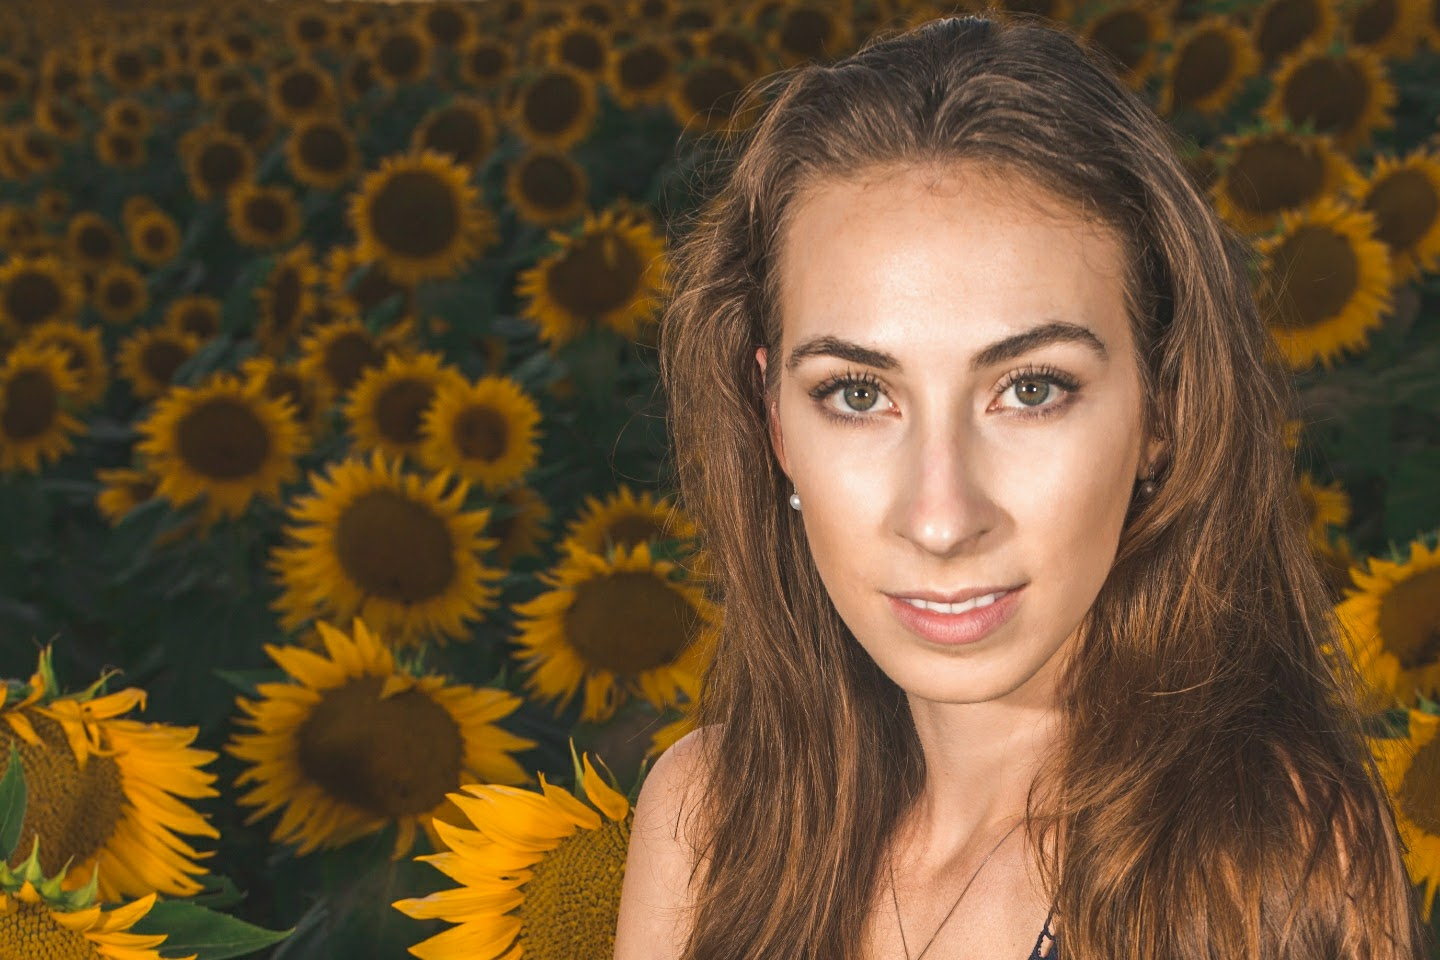 Morgan Pashen headshot in sunflower field